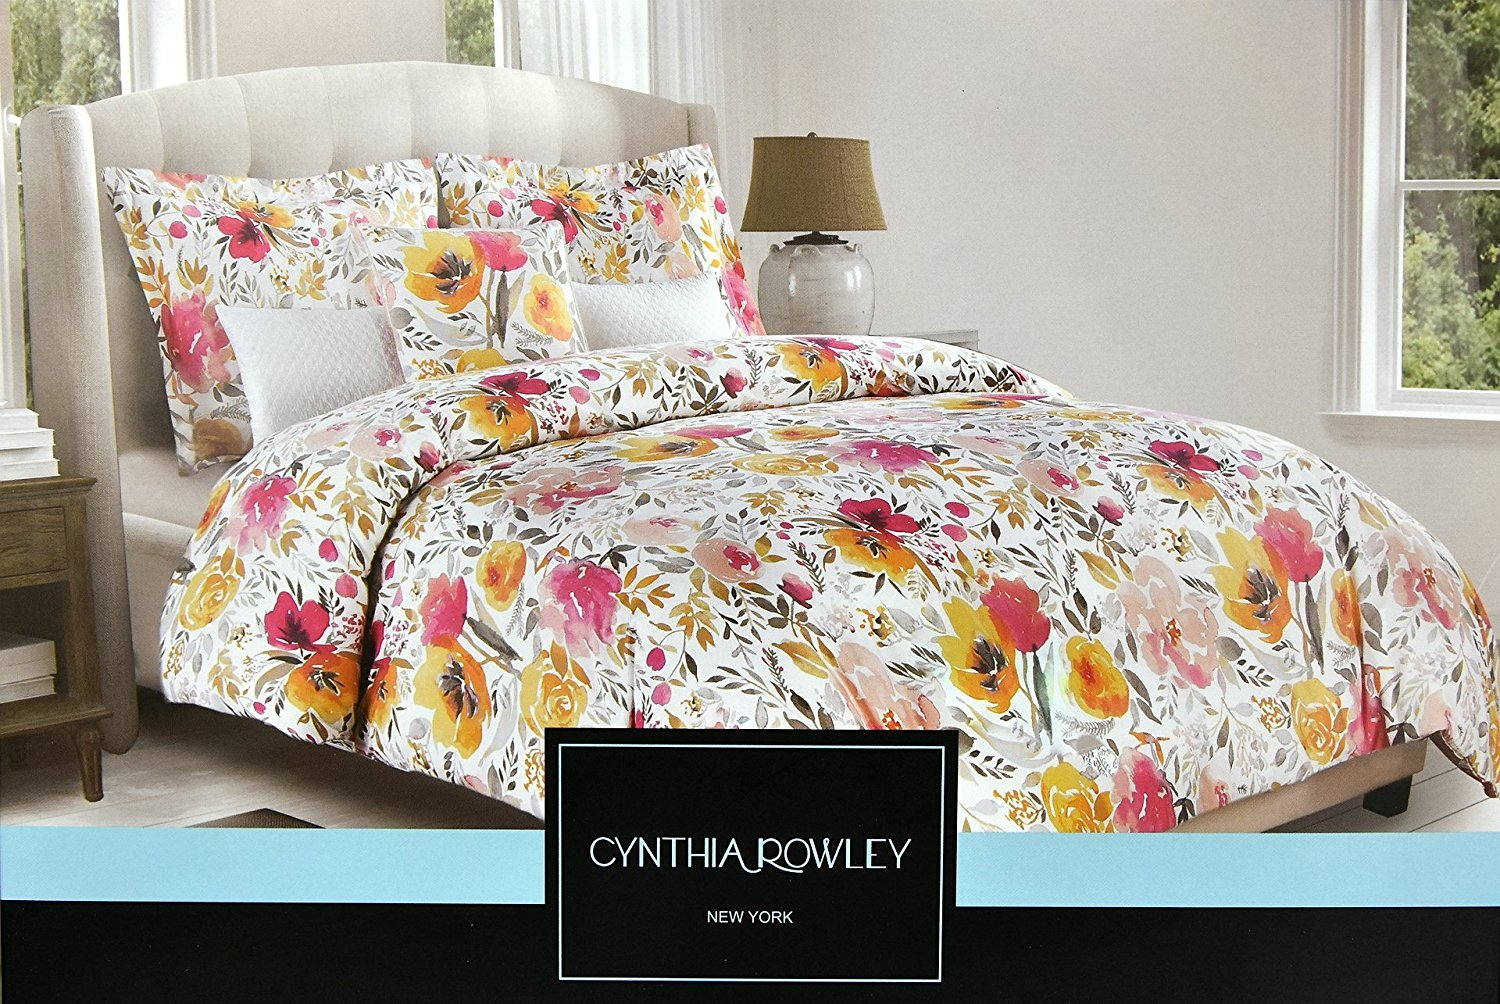 Cynthia Rowley 3pc Duvet Cover Set Large Floral Jacobean Flowers Paisley Scroll Gray Grey Turquoise Taupe Mustard Yellow Luxury Cotton King